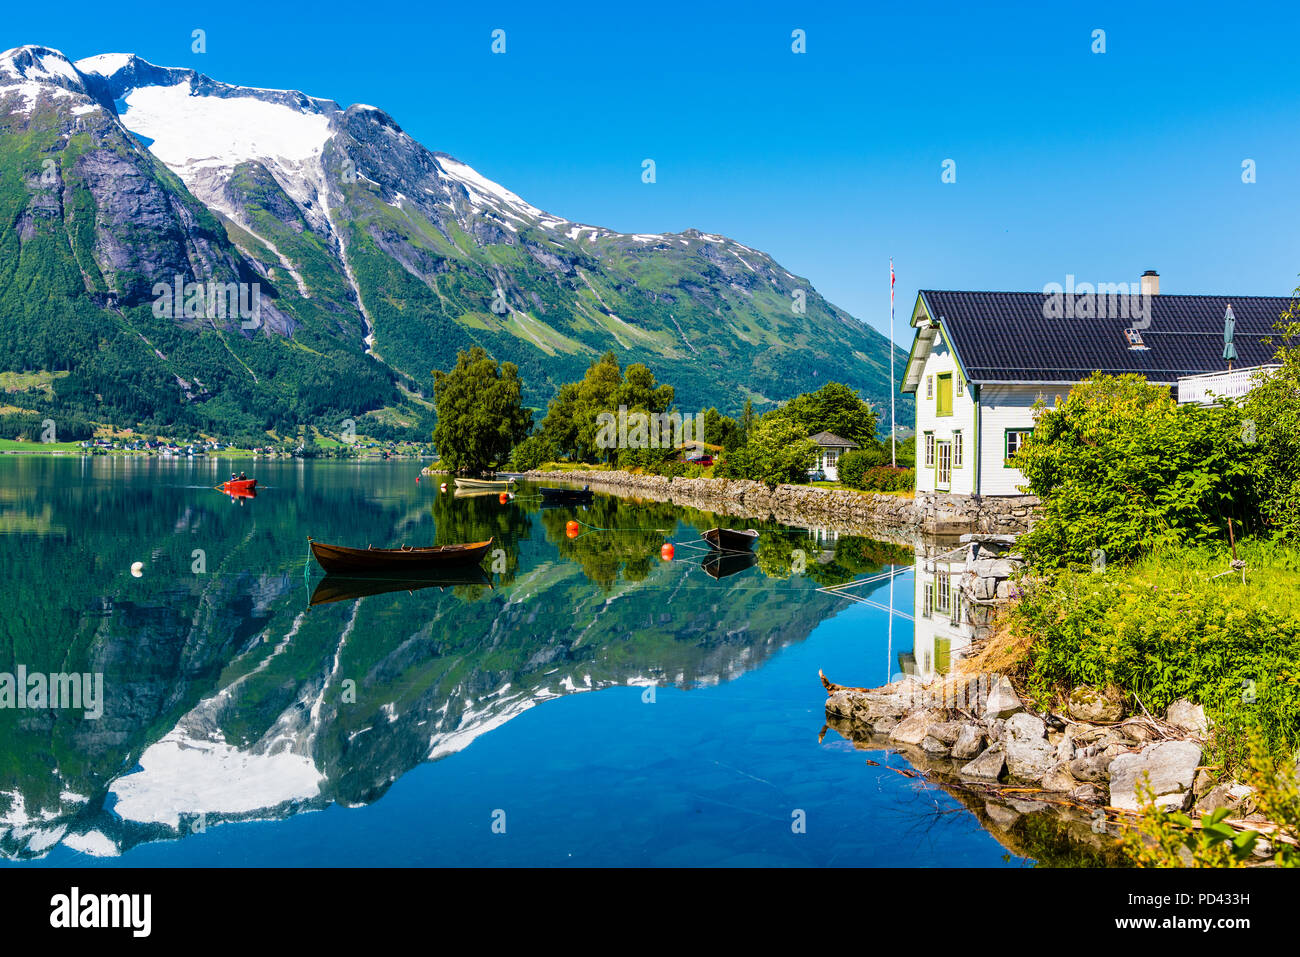 Hjelle, Western Norway, beautifully situated by the lake Oppstrynsvatnet. - Stock Image